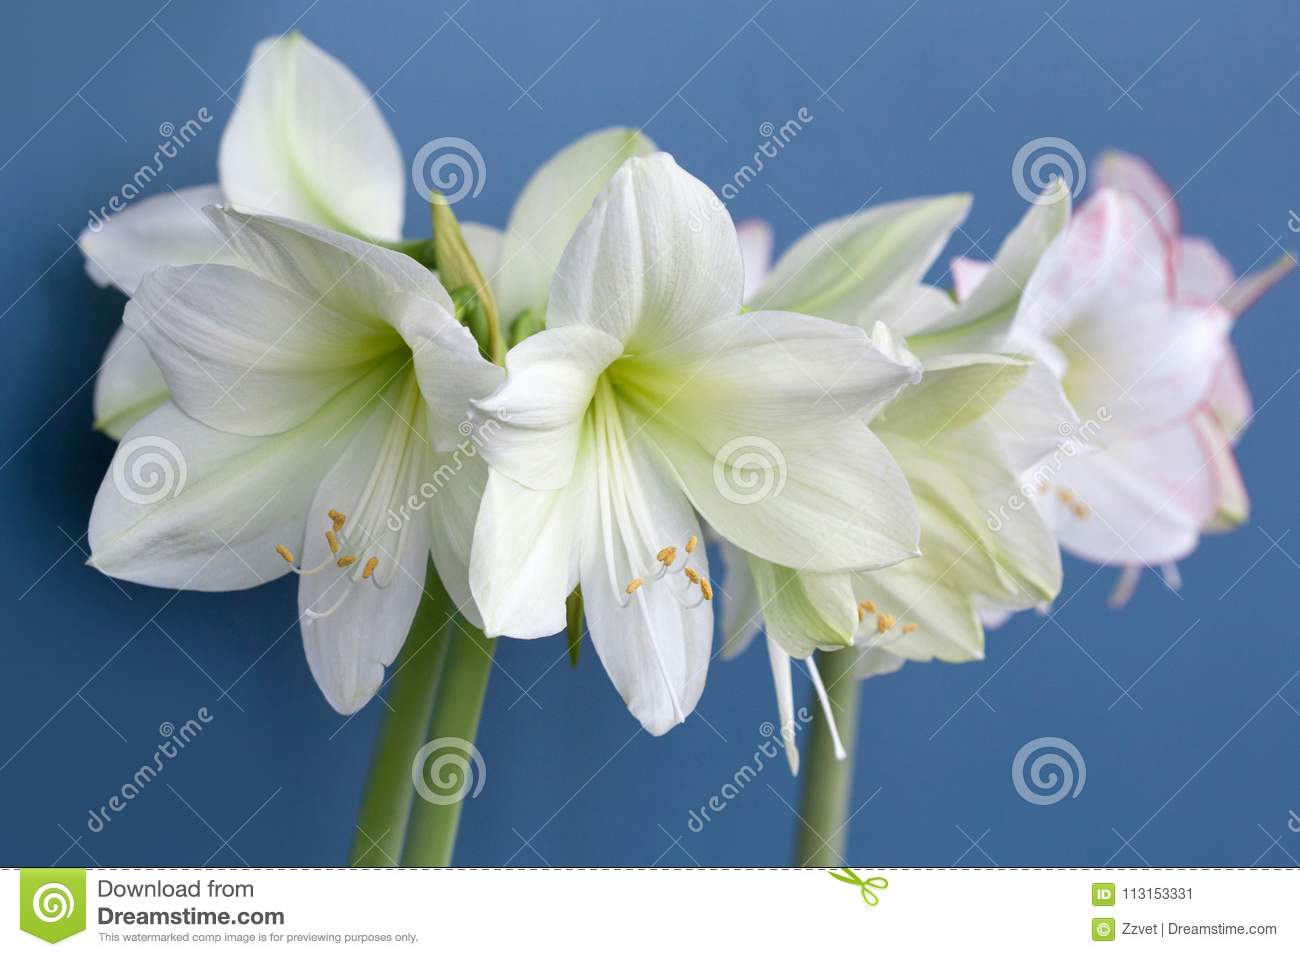 Amaryllis hippeastrum large flowering moonlight and picasso stock download amaryllis hippeastrum large flowering moonlight and picasso stock image image of flowering bulb izmirmasajfo